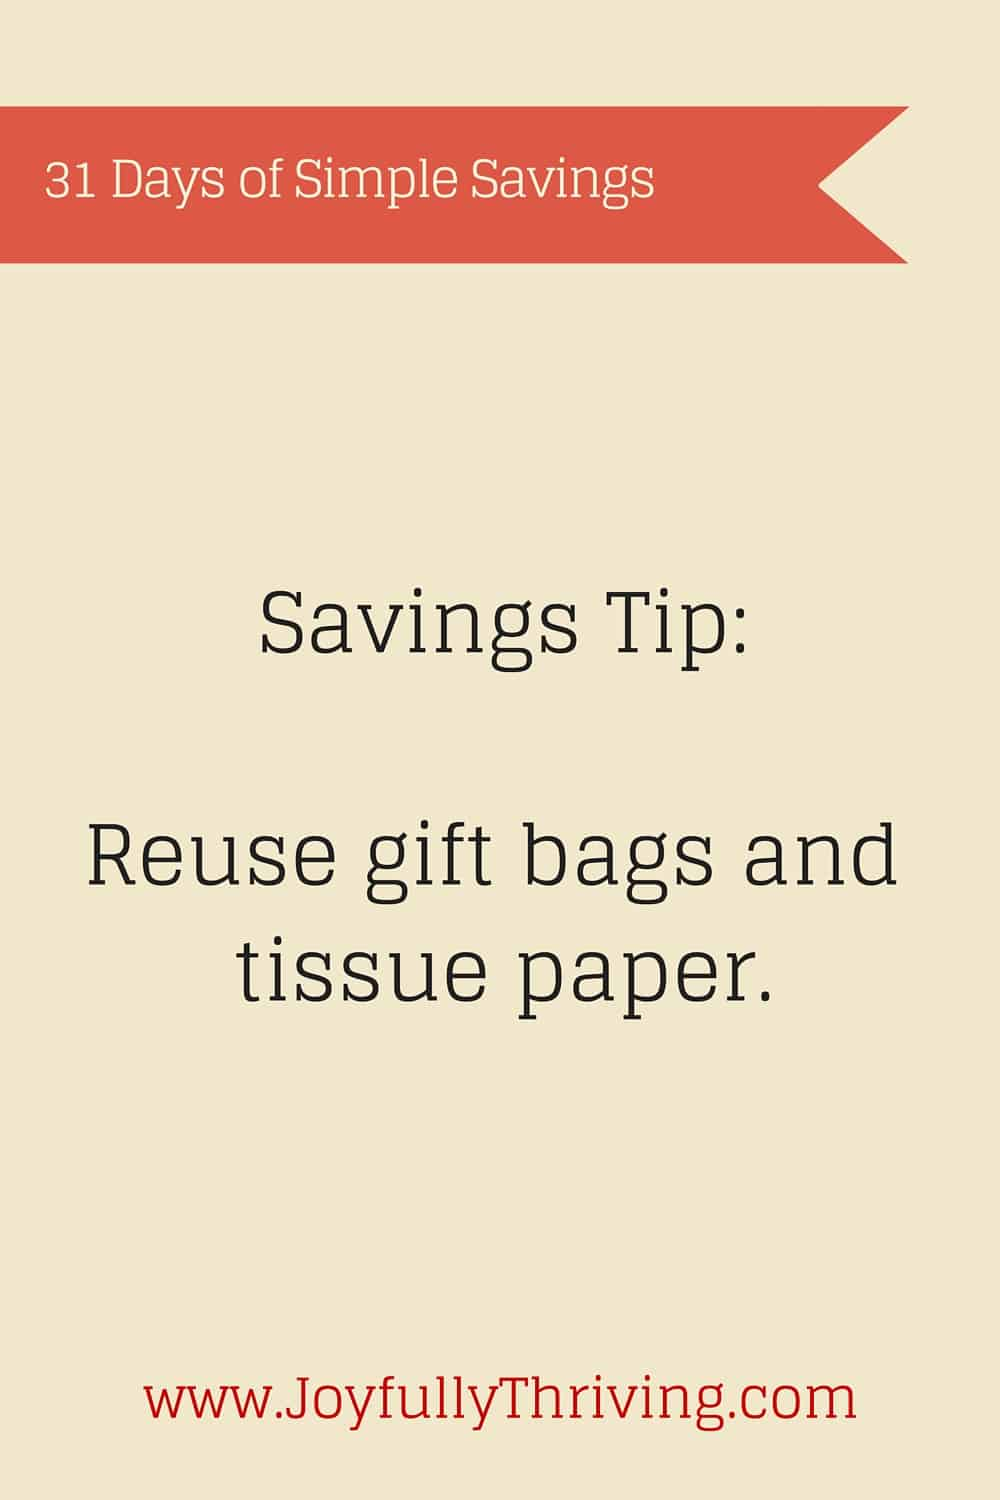 Simple Savings: Reuse gift bags and tissue paper.